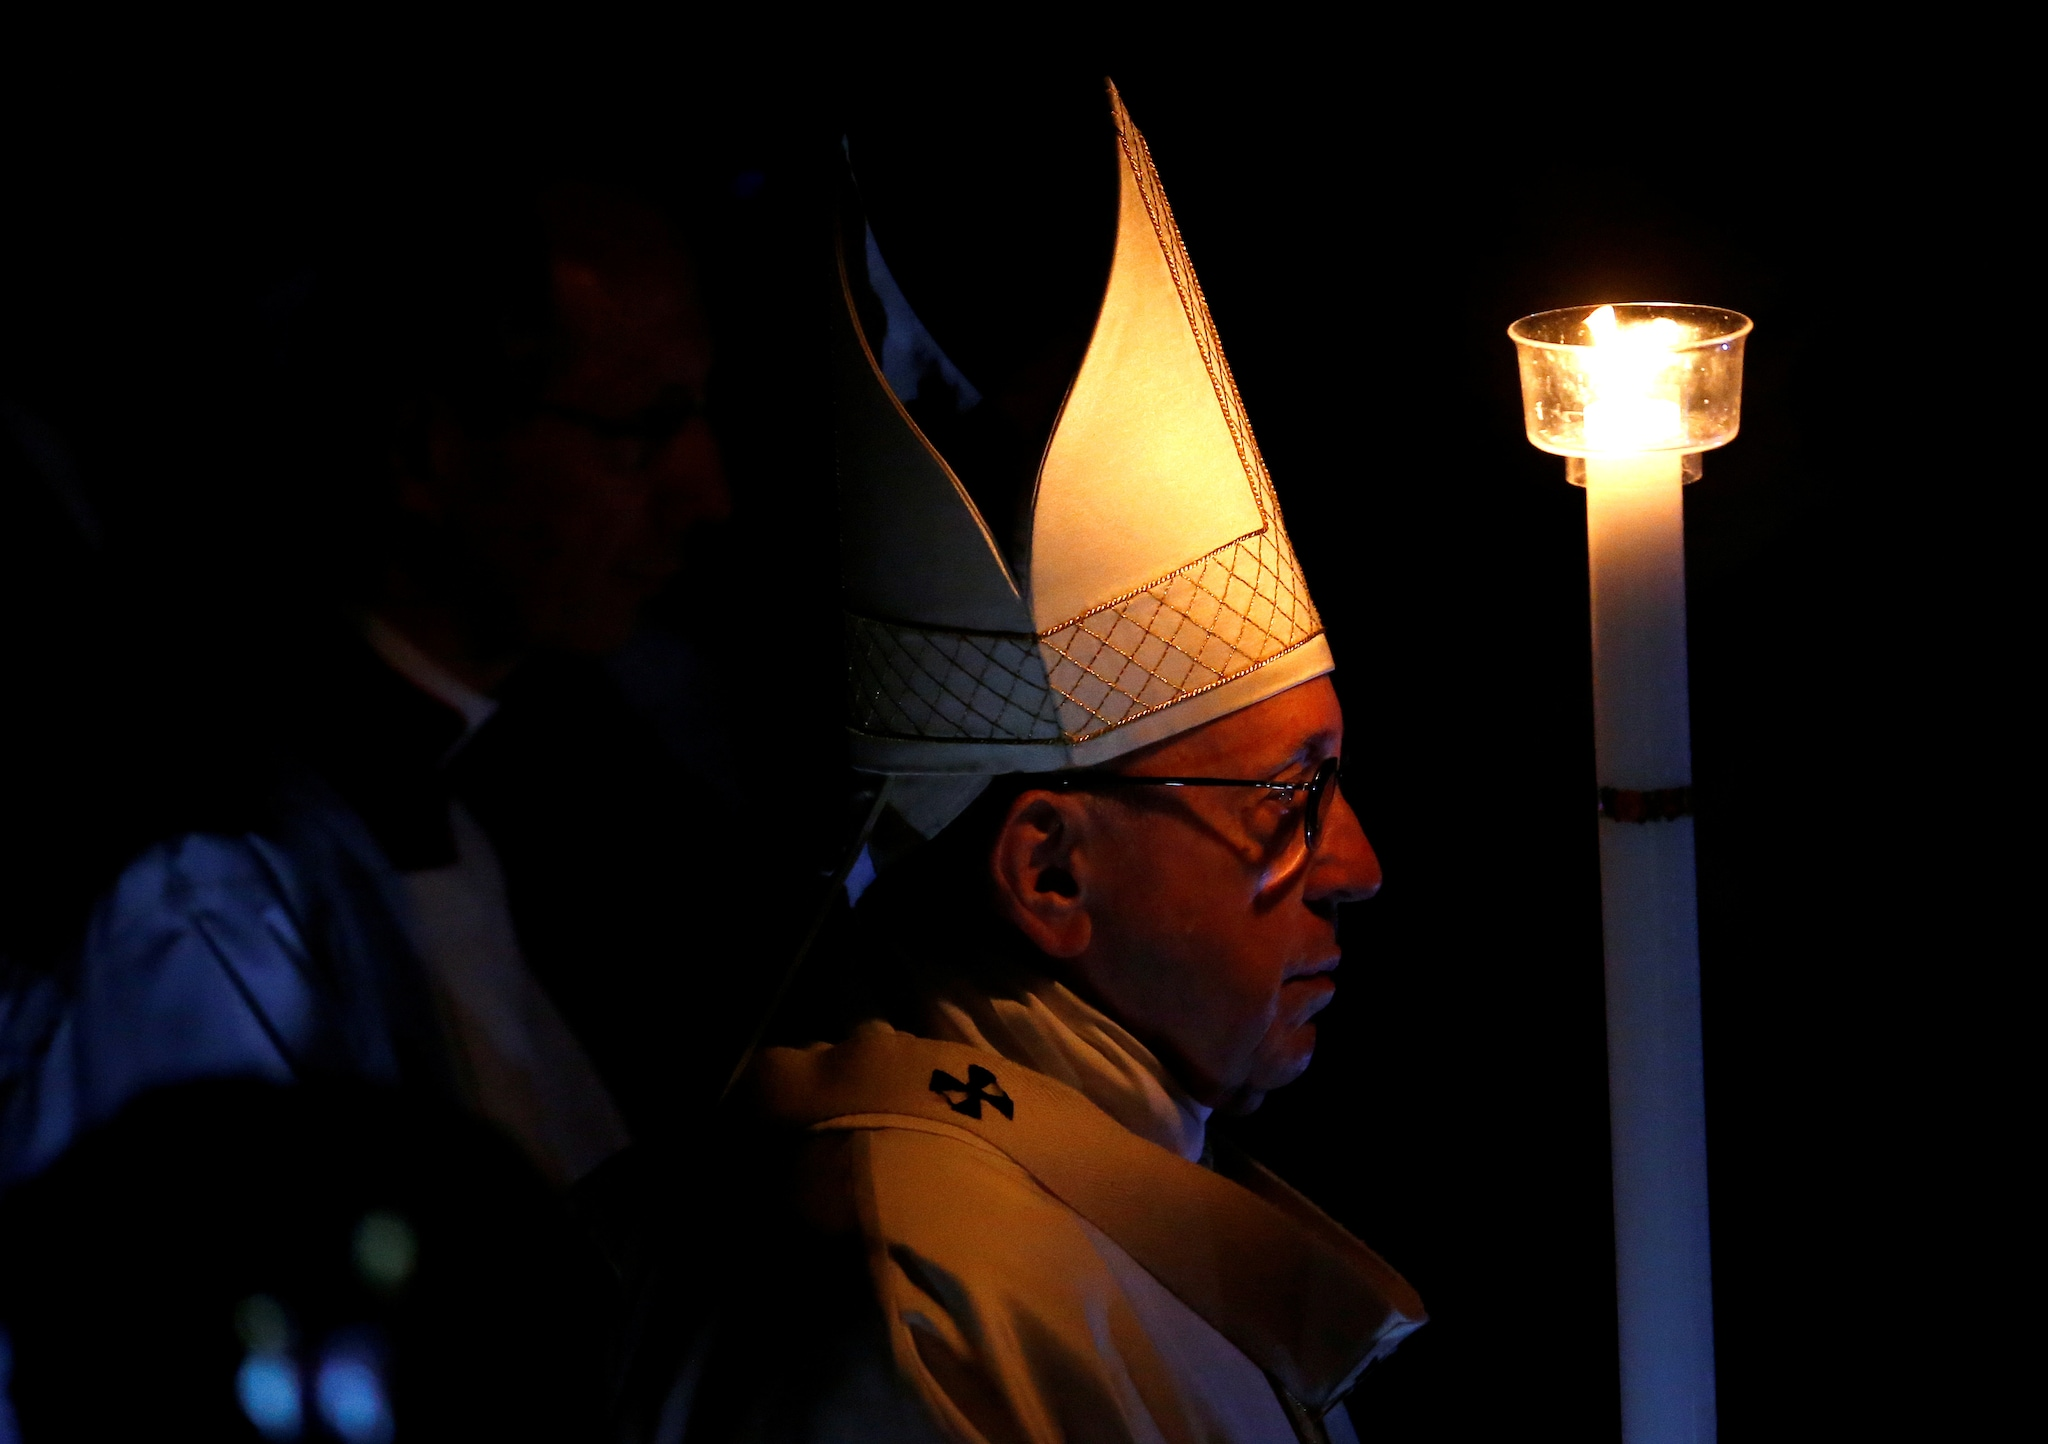 Pope Francis holds a candle as he leads the Easter vigil mass in Saint Peter's Basilica at the Vatican, March 31, 2018. REUTERS/Stefano Rellandini